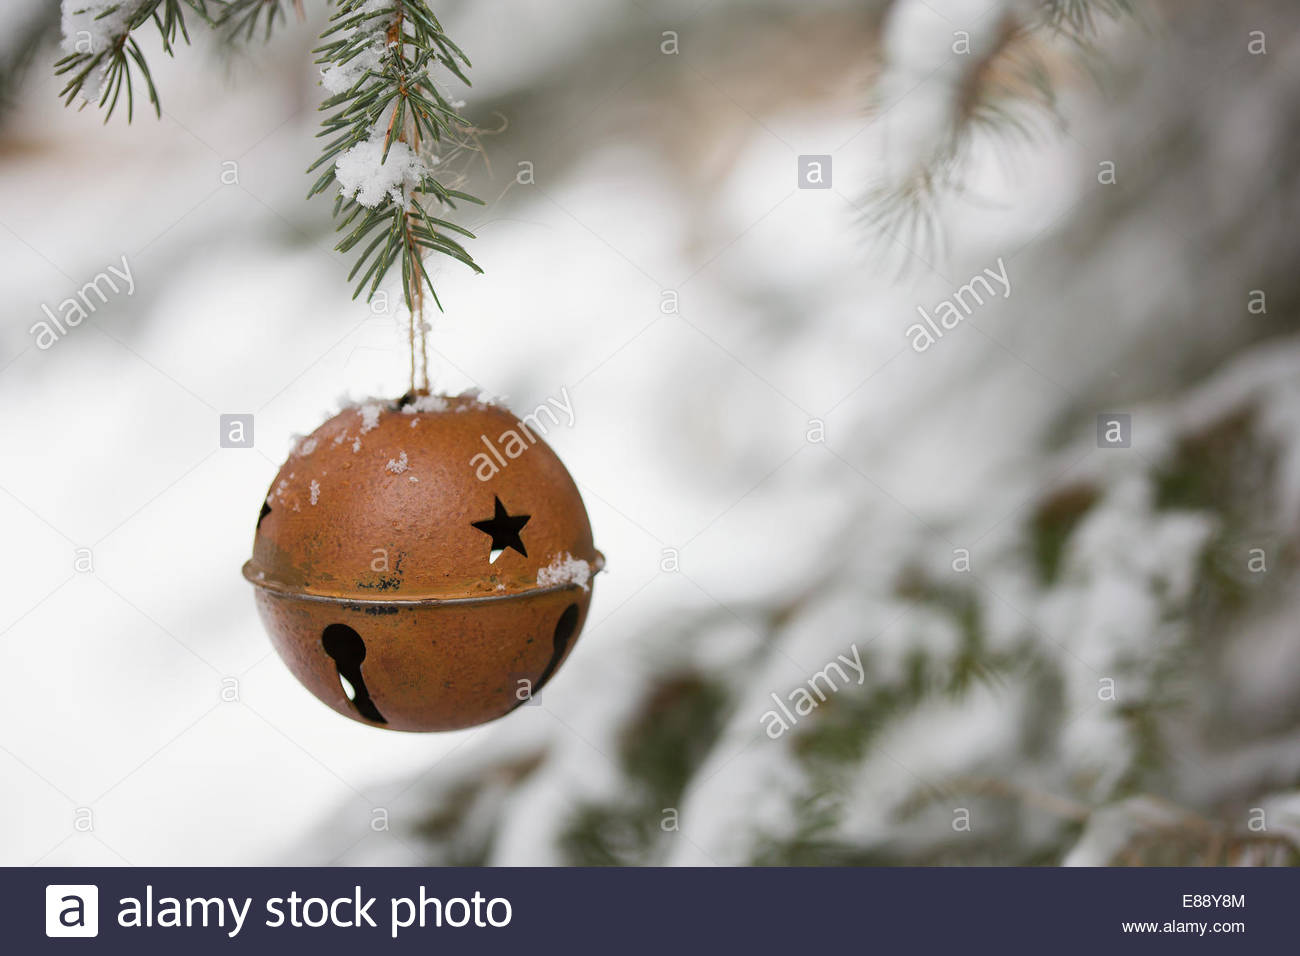 Bell ornament hanging from snowy tree branch - Stock Image